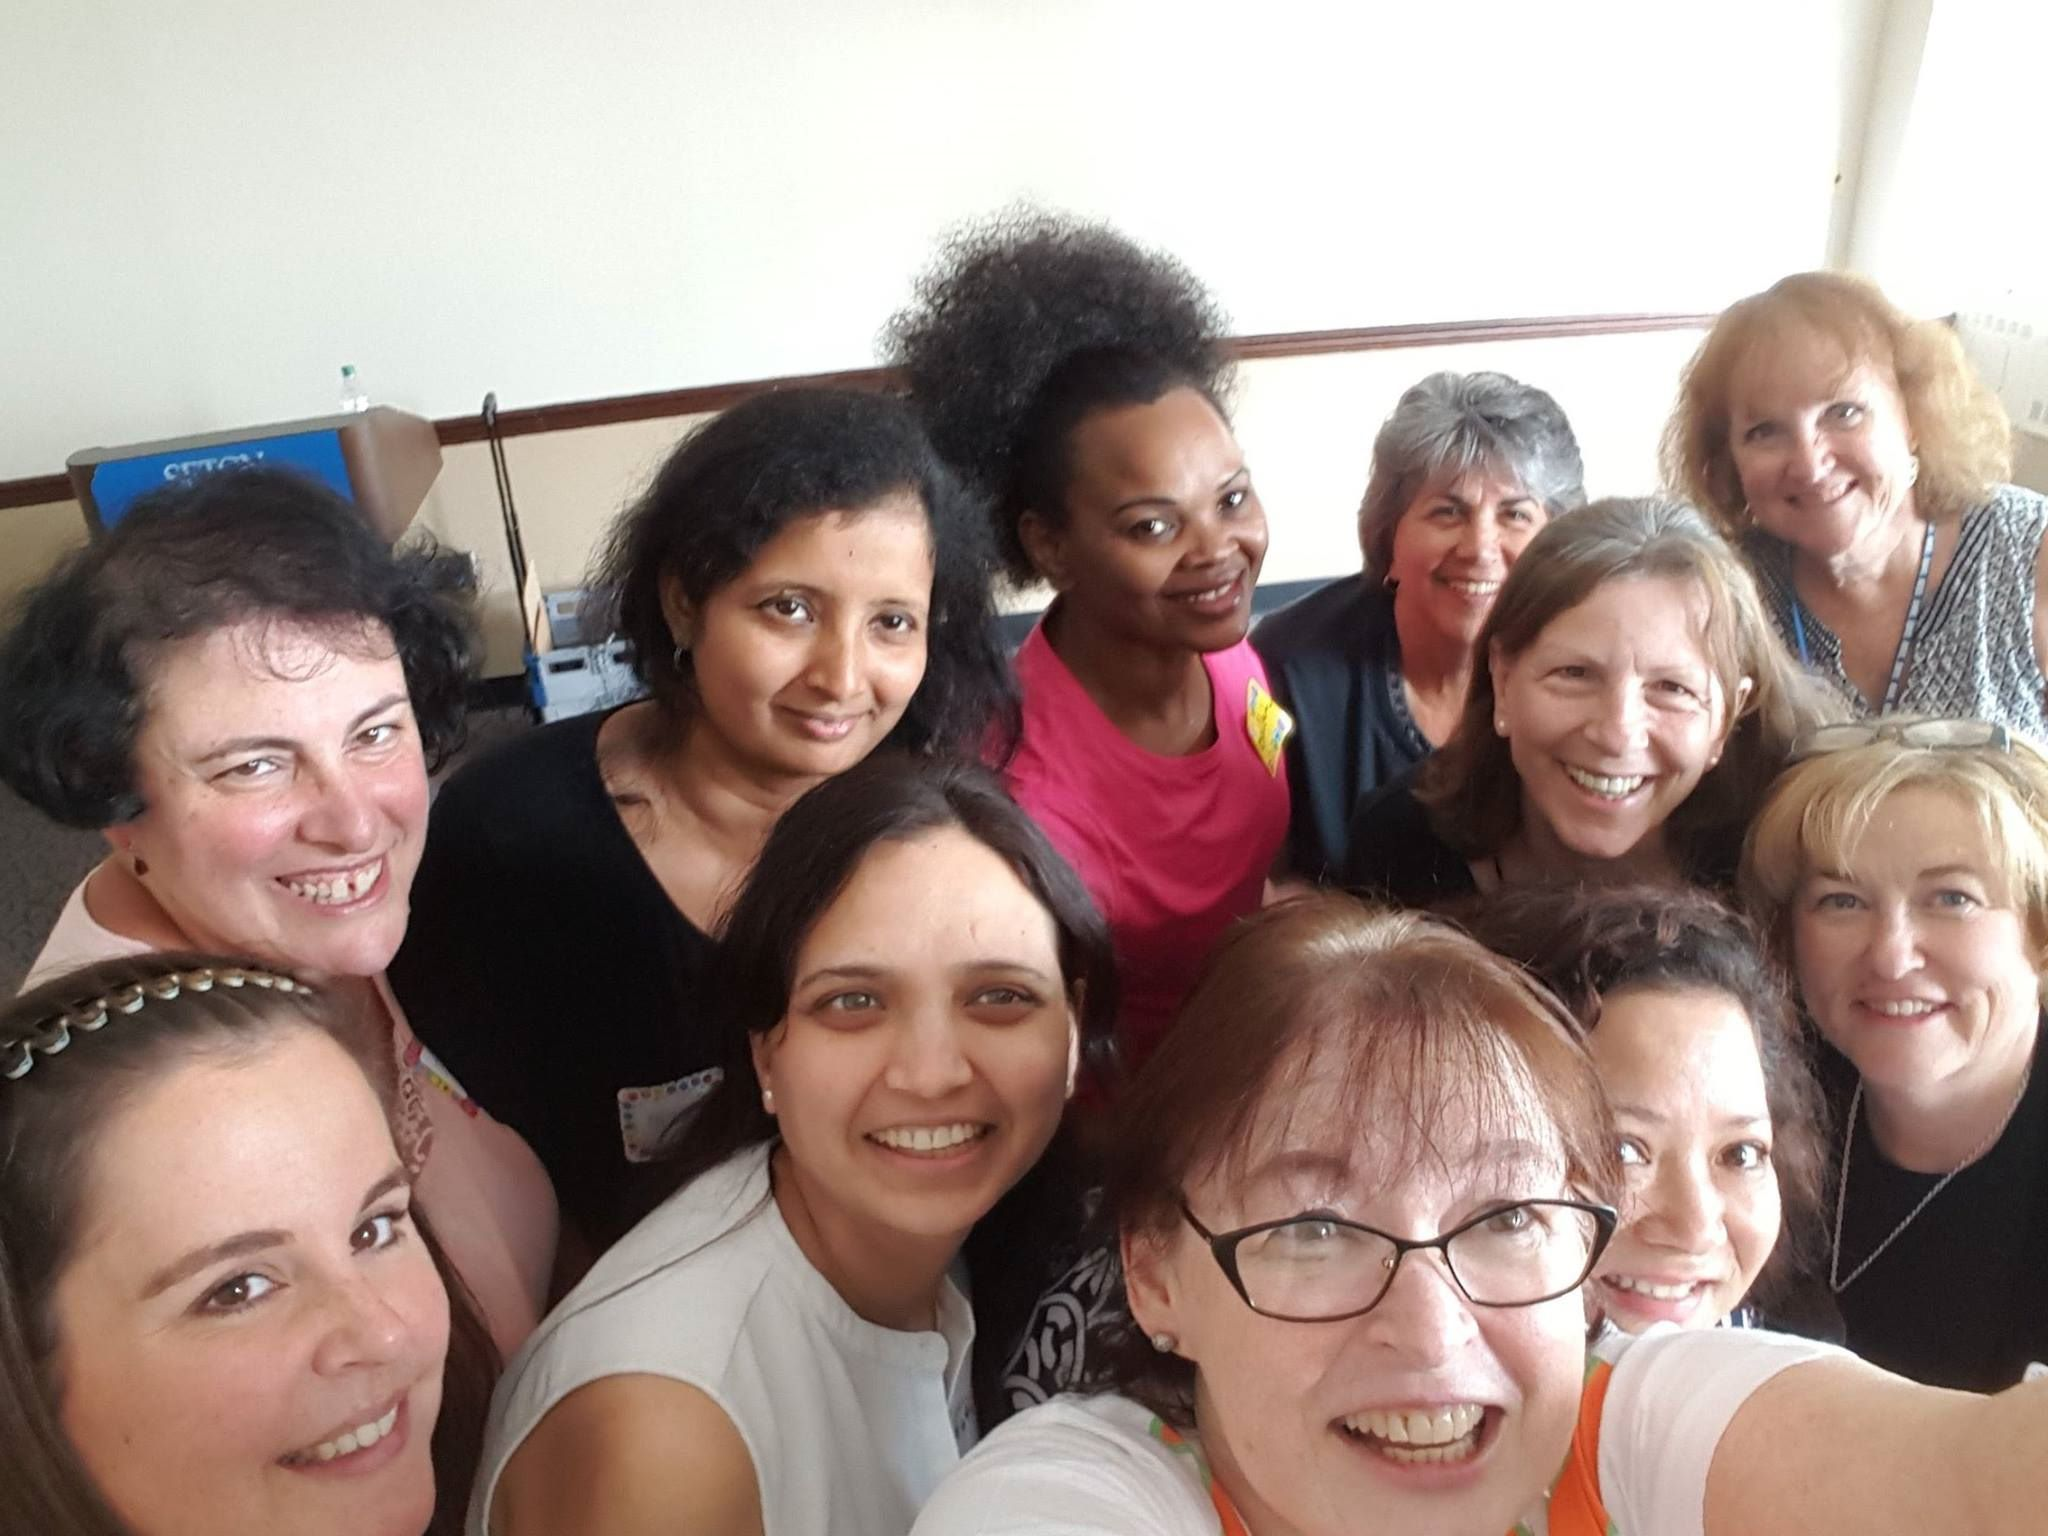 A diverse group of women from Seton Hall pose for a Laughter Selfie.